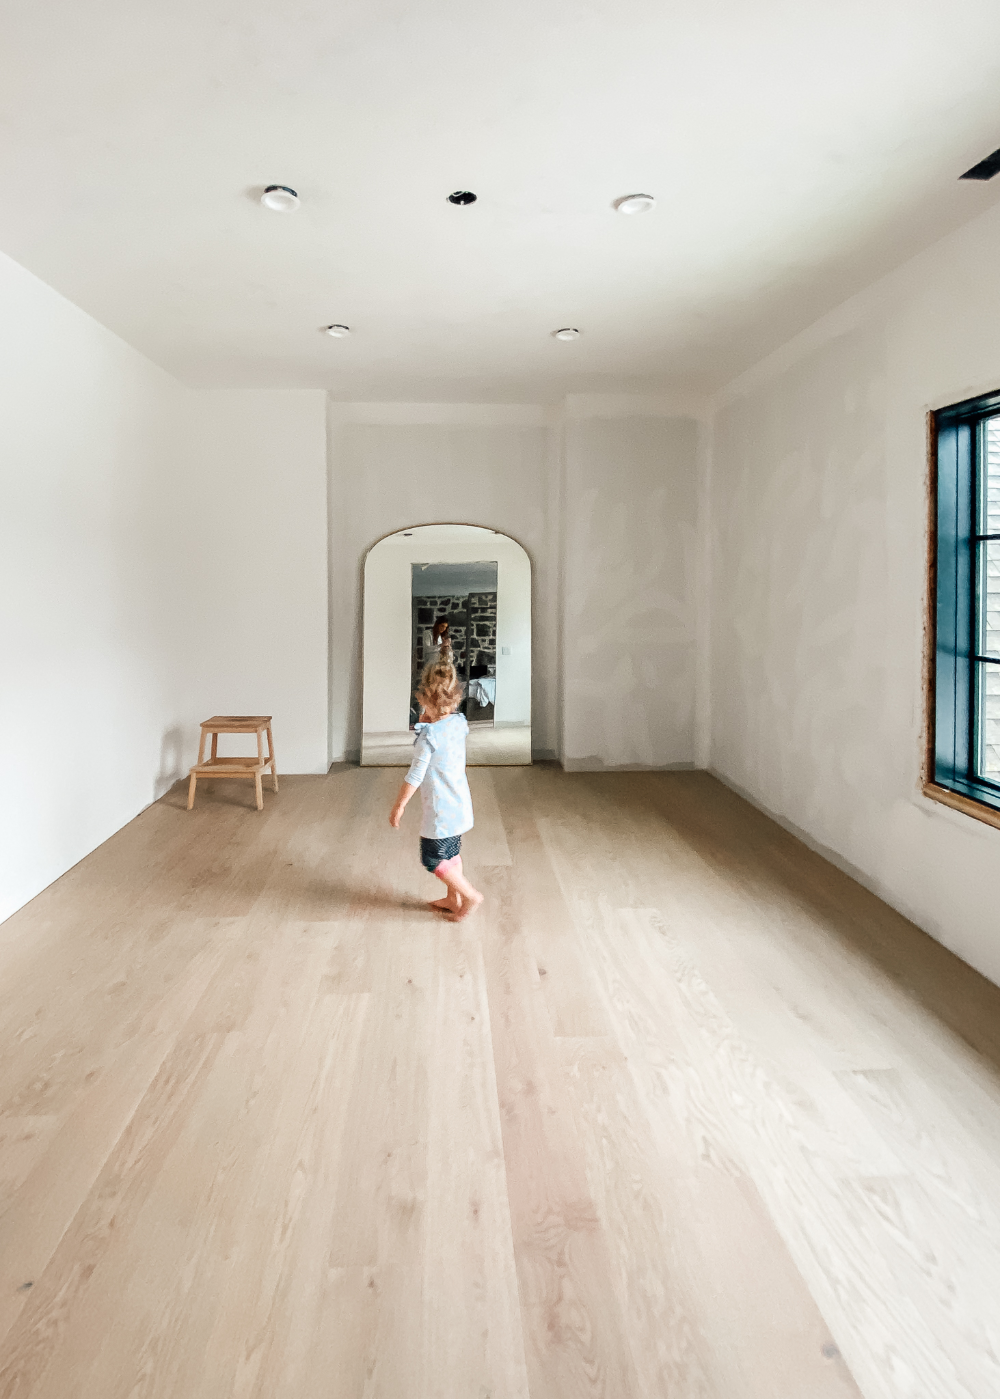 All about The New Wood Flooring throughout Our House   House ...